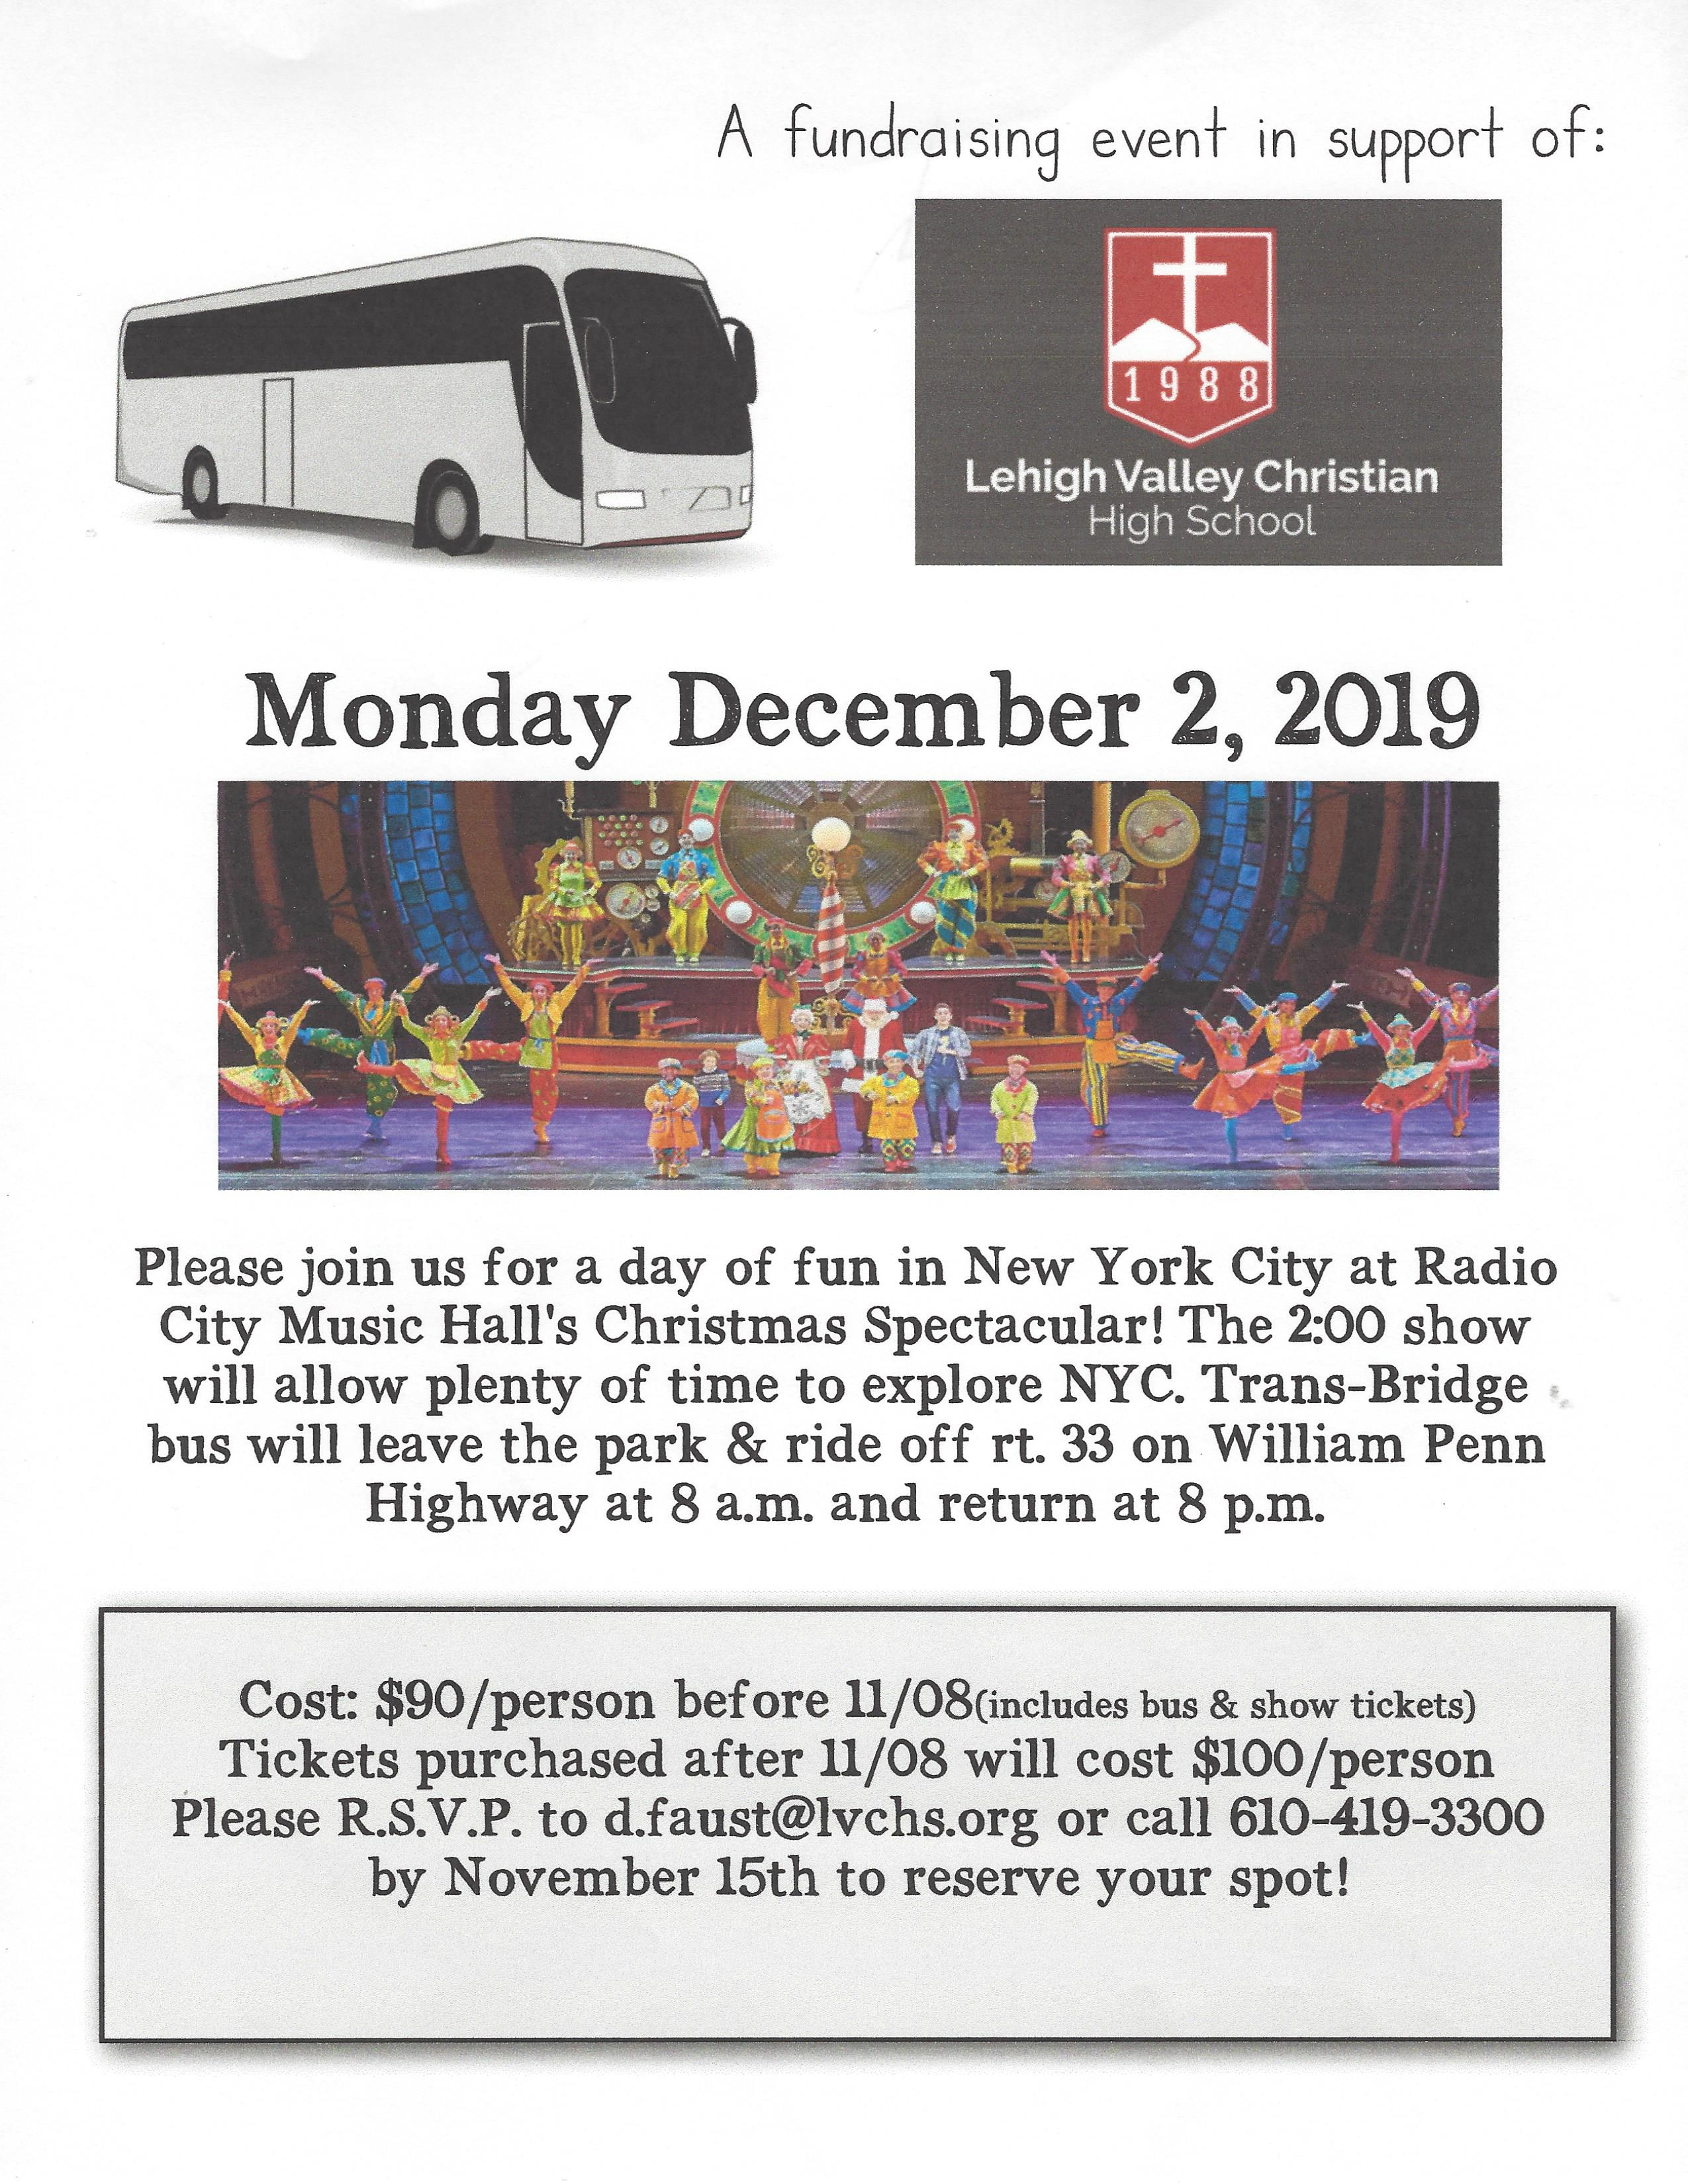 Rockettes Christmas Spectacular 2020 Bus Tours Bus Trip to Radio City Music Hall's Christmas Spectacular – 12/2